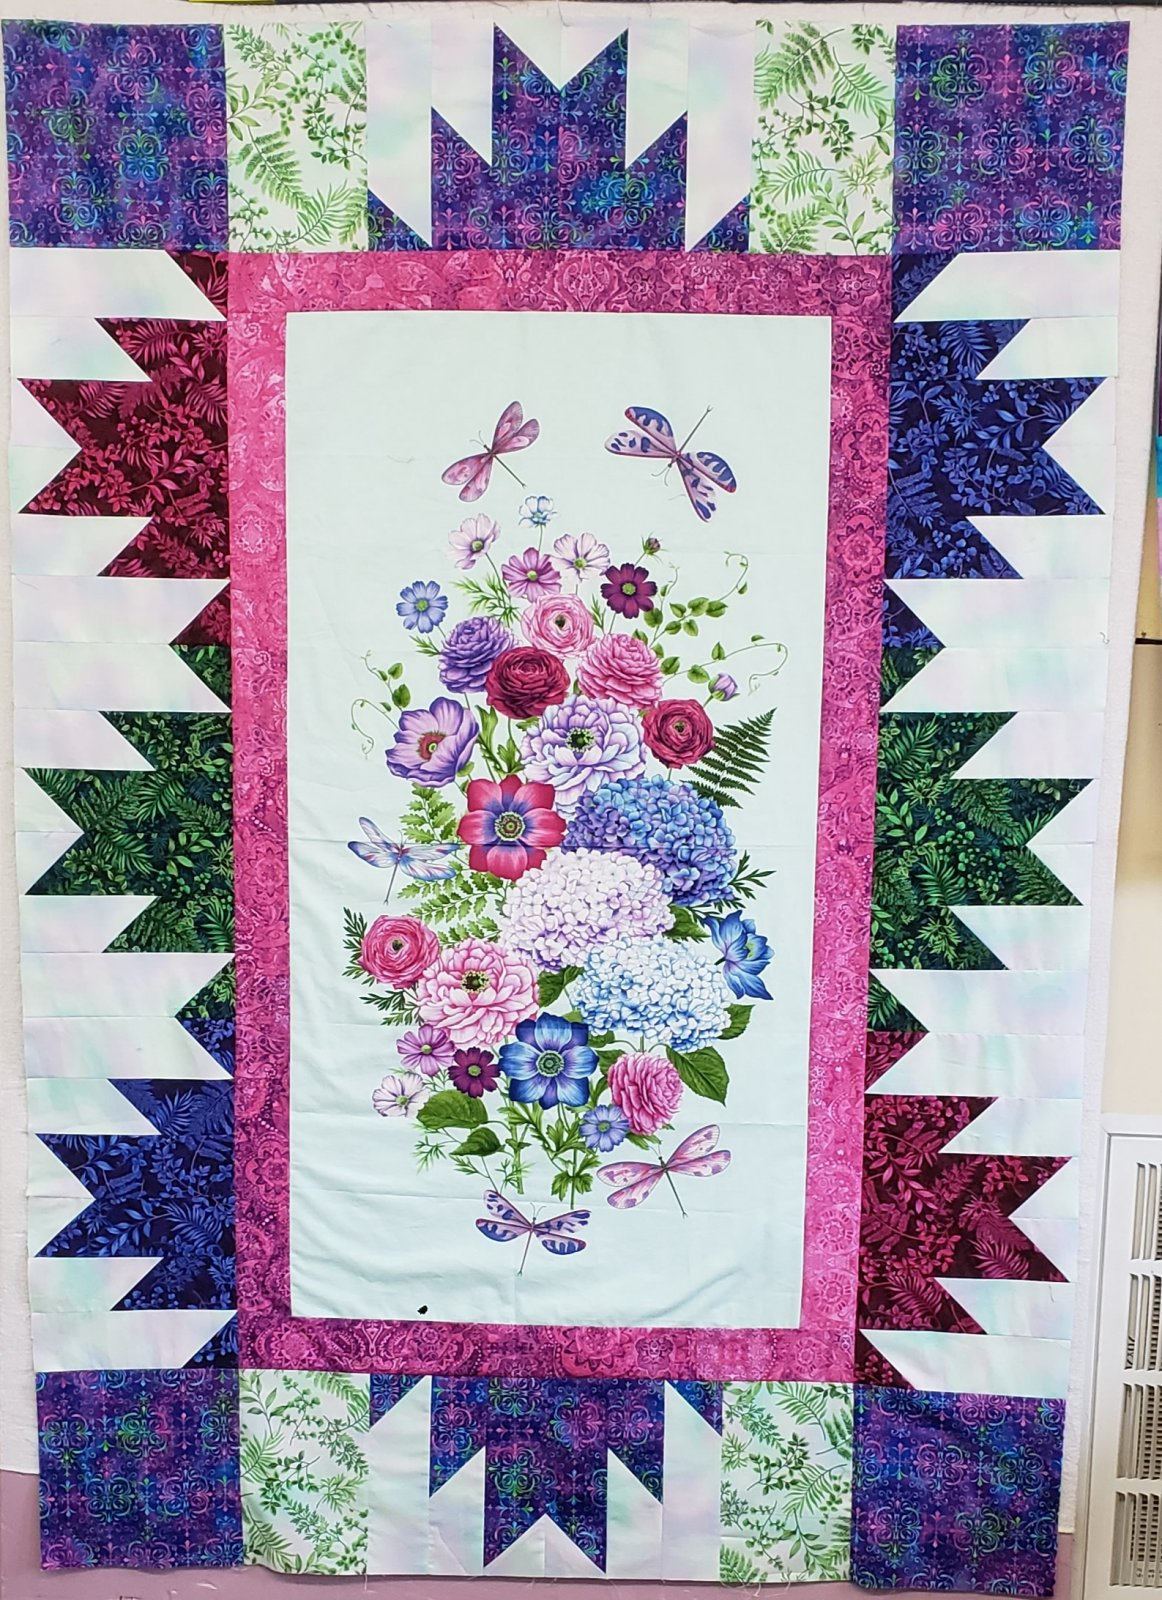 Dragonfly Garden QUILT/WALL HANGING KIT - 46 x 67